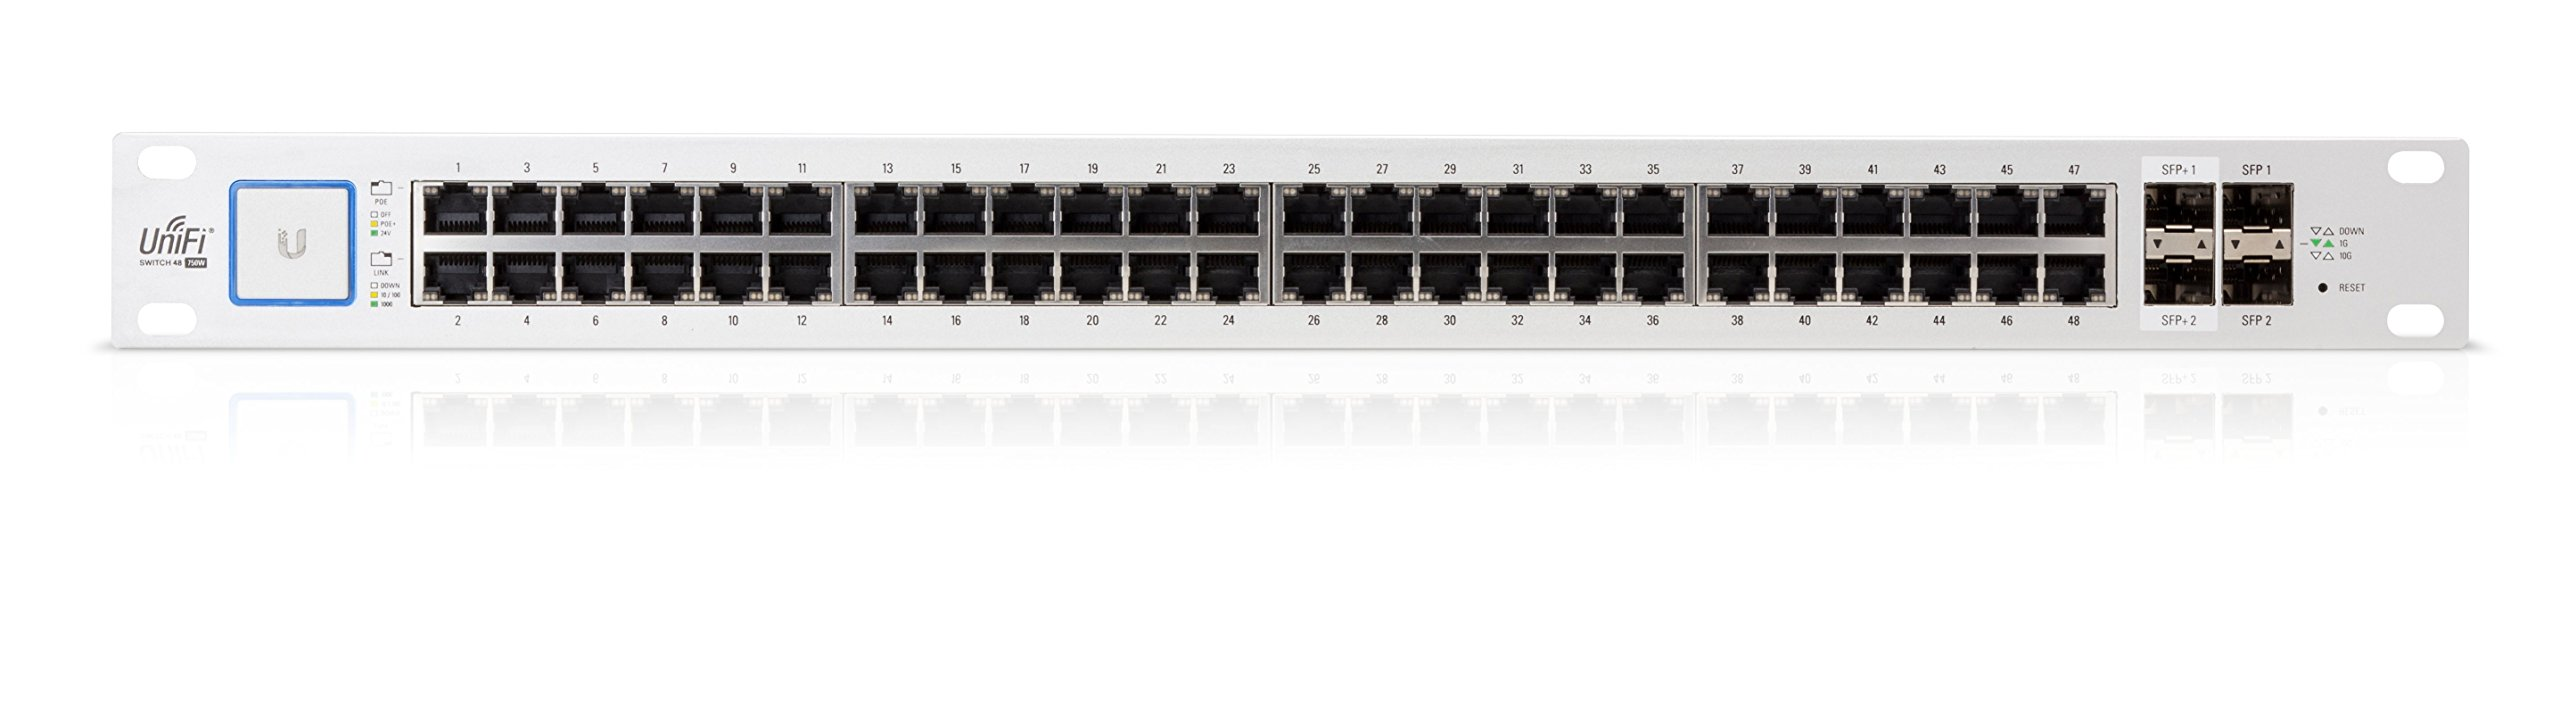 Ubiquiti UniFi Switch 48 Port US-48-750W  Managed PoE+ Gigabit Switch with SFP 750W by Ubiquiti Networks